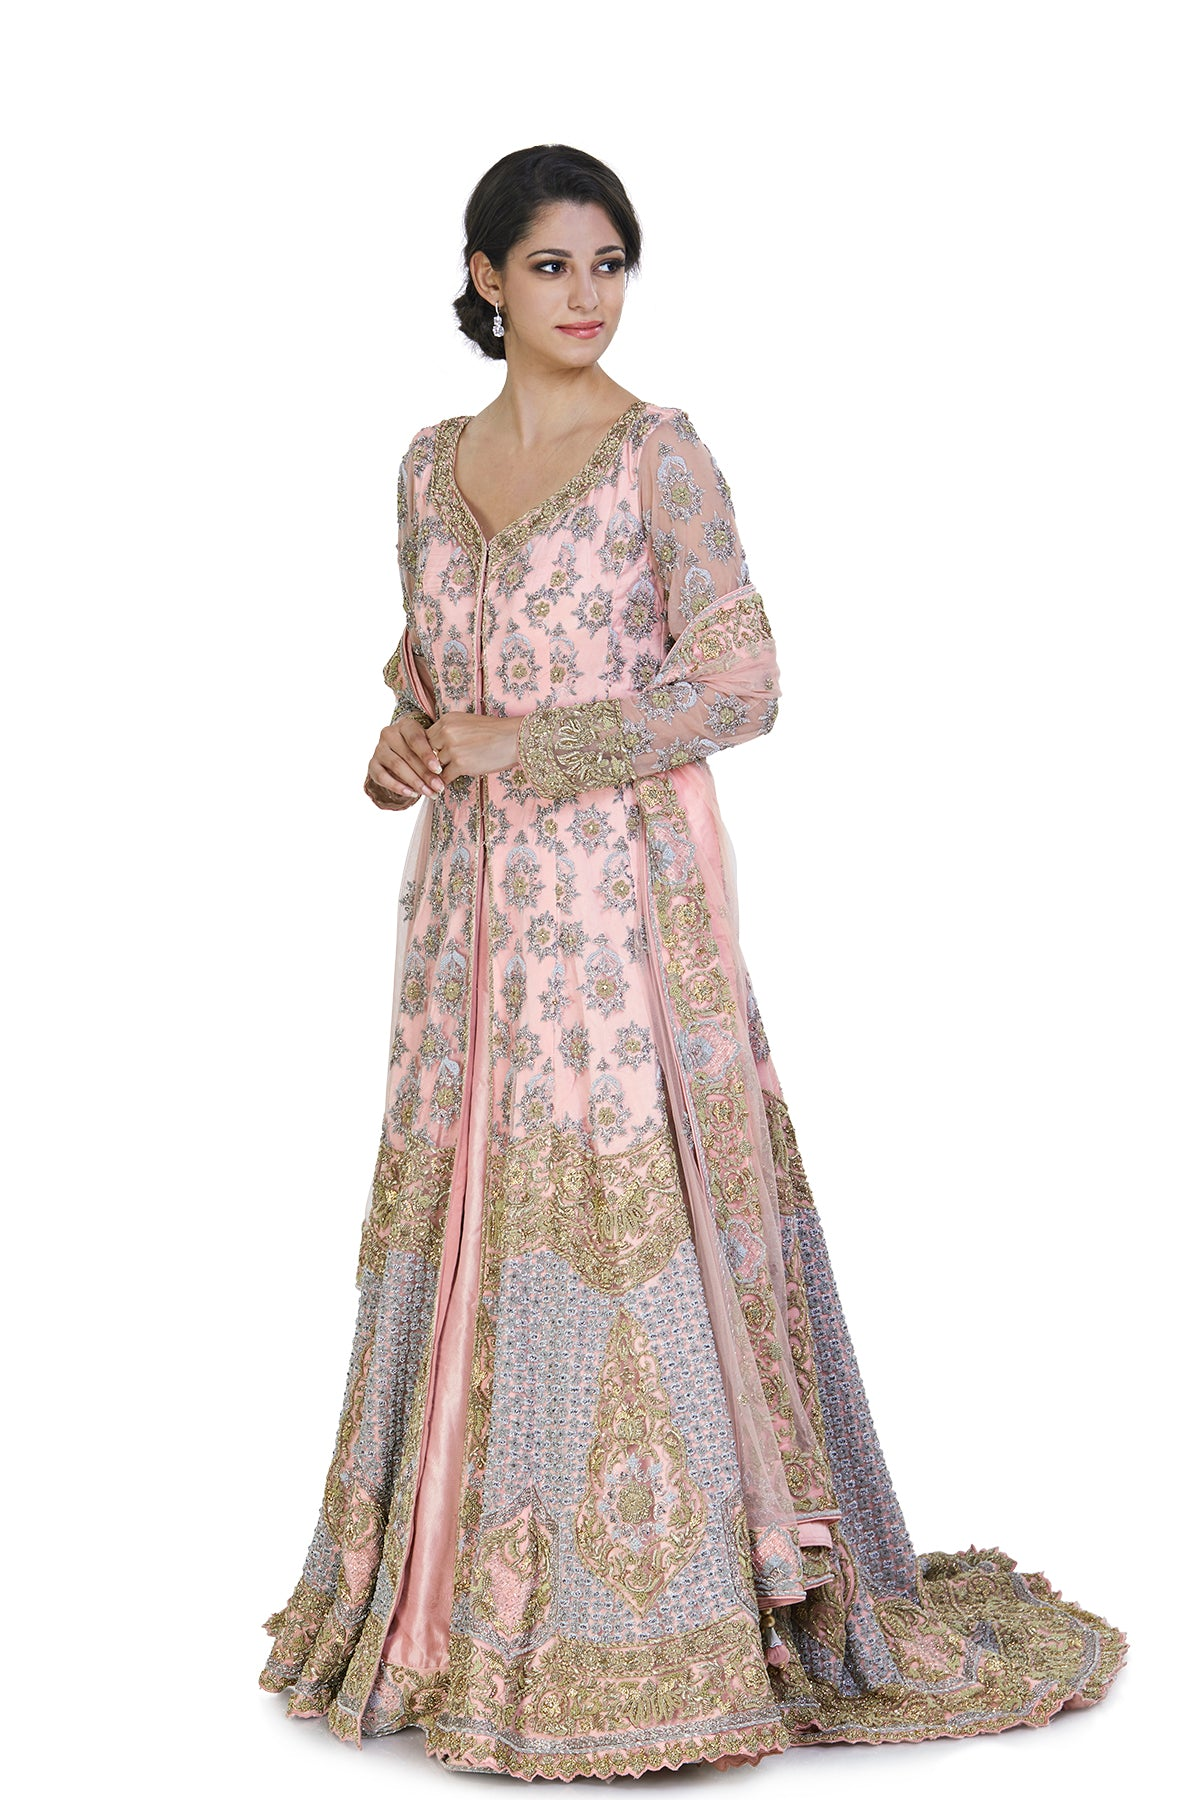 Baby pink lehenga with long top and dupatta